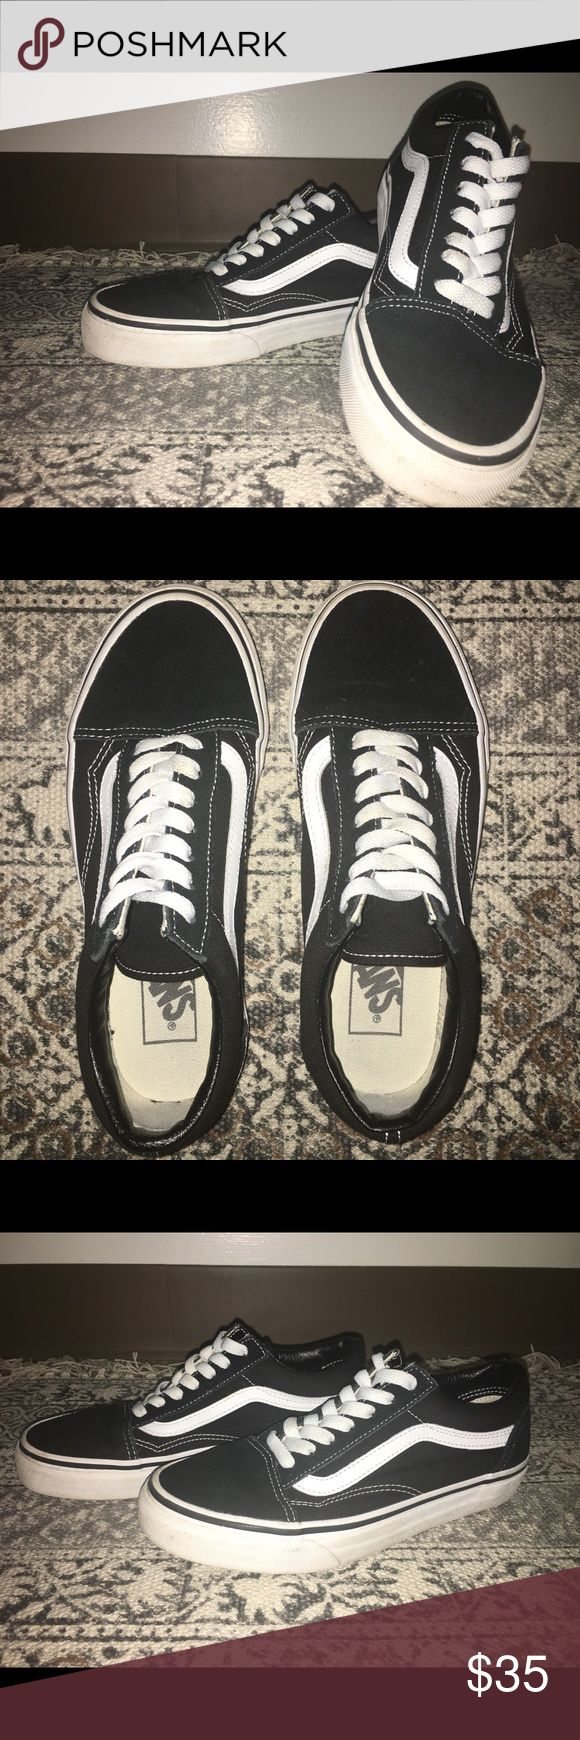 Old Skool Vans black/white (women's size 6.5) Like brand new!!! I've worn these maybe three times, as you can tell from the sole. There's absolutely no scuffs on these shoes. The white part is still very white. They don't smell or anything. Vans Shoes Sneakers